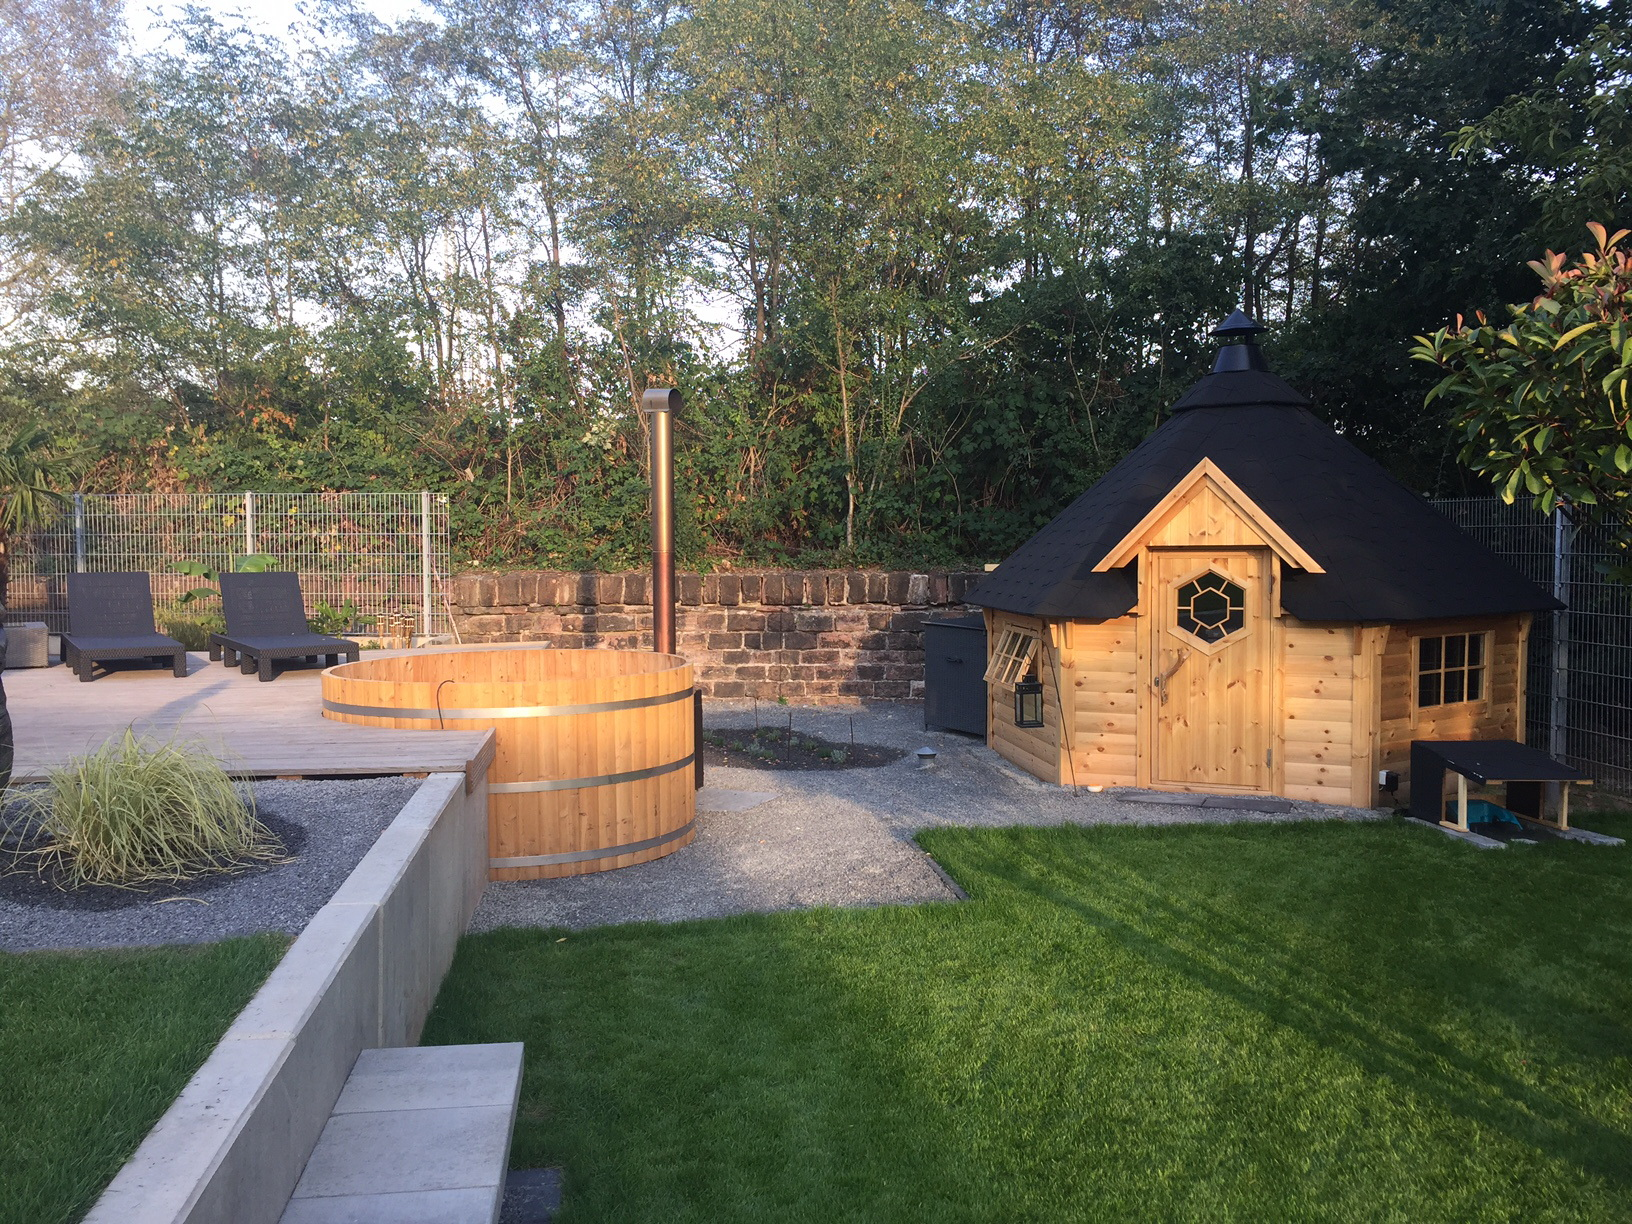 grillkota wooden hot tubs and barrel saunas. Black Bedroom Furniture Sets. Home Design Ideas